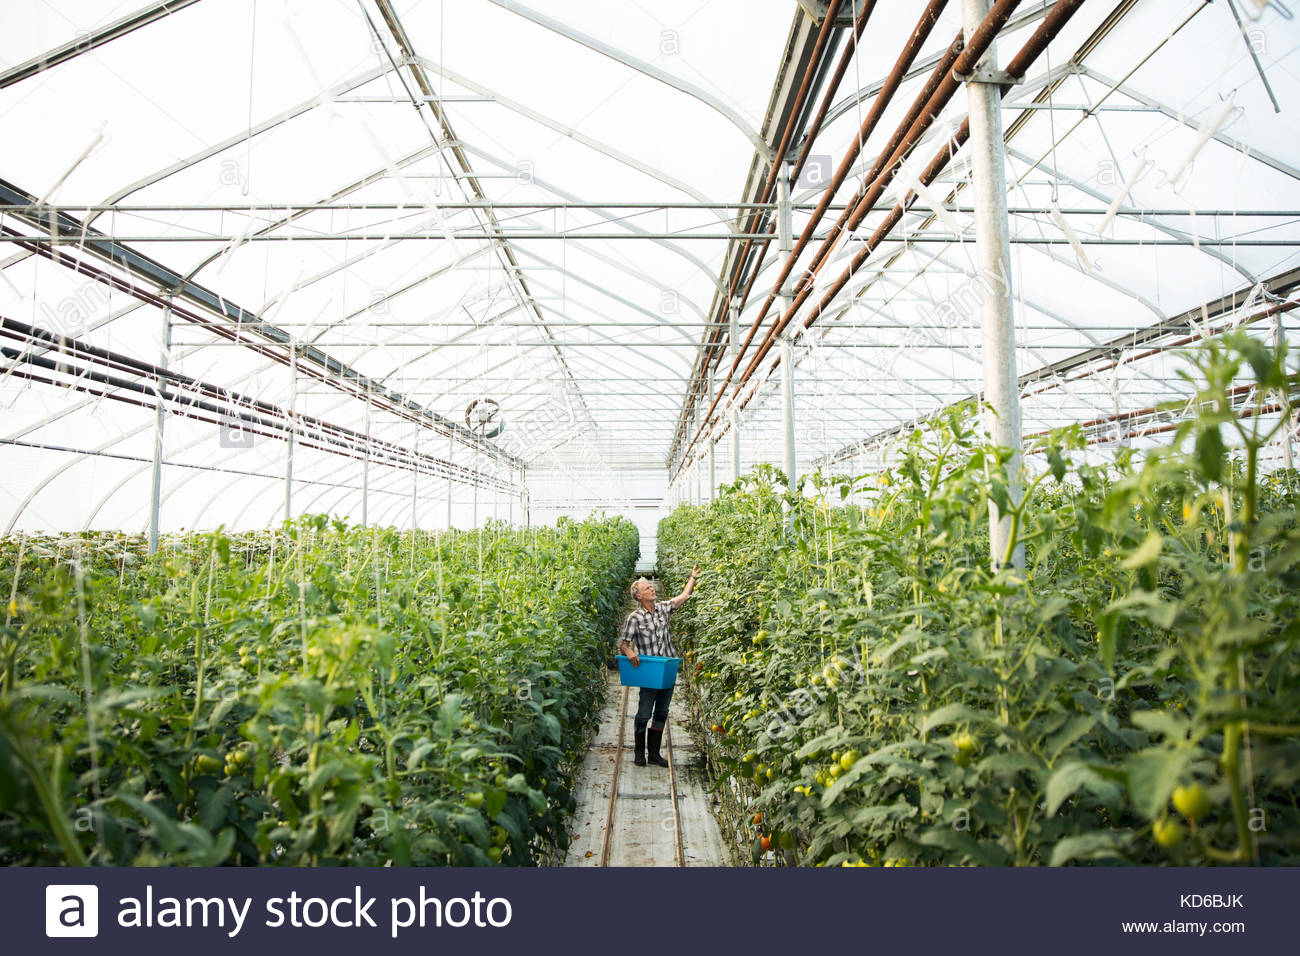 Male farmer inspecting tomato plants in greenhouse - Stock Image